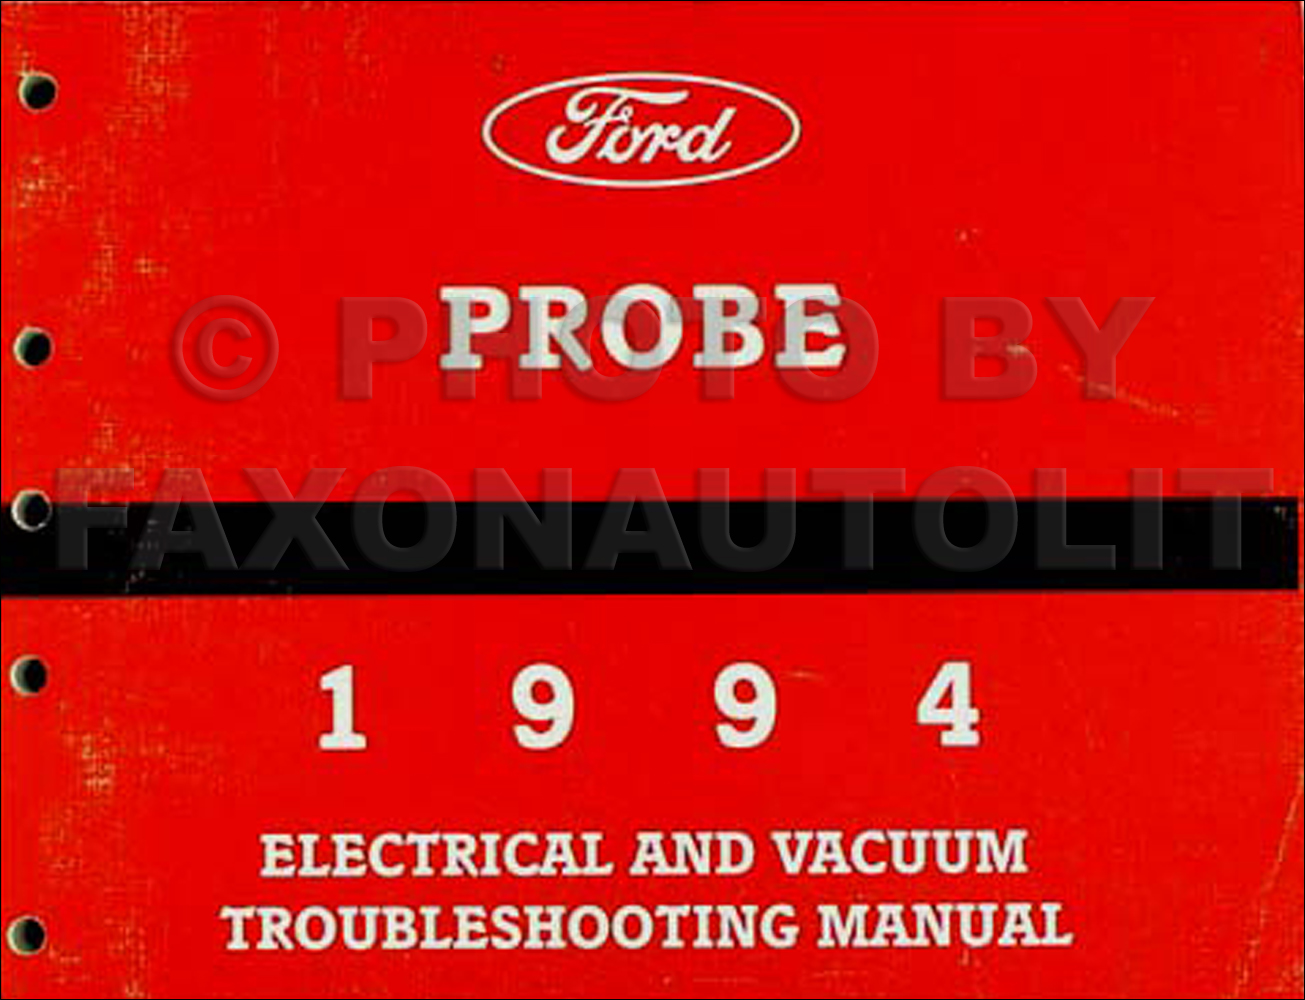 Search 1994 Ford Aspire Fuse Box Probe Electrical Vacuum Troubleshooting Manual Original